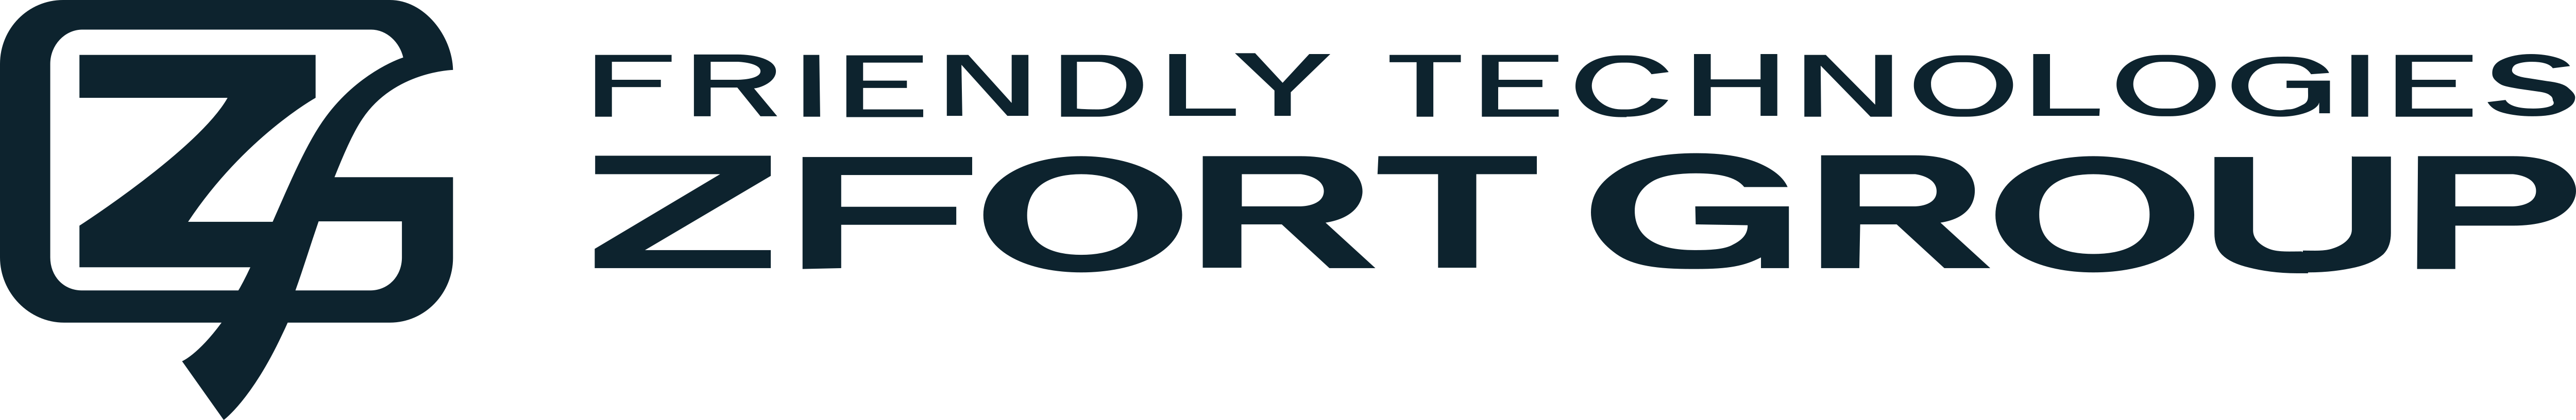 Zfort Group